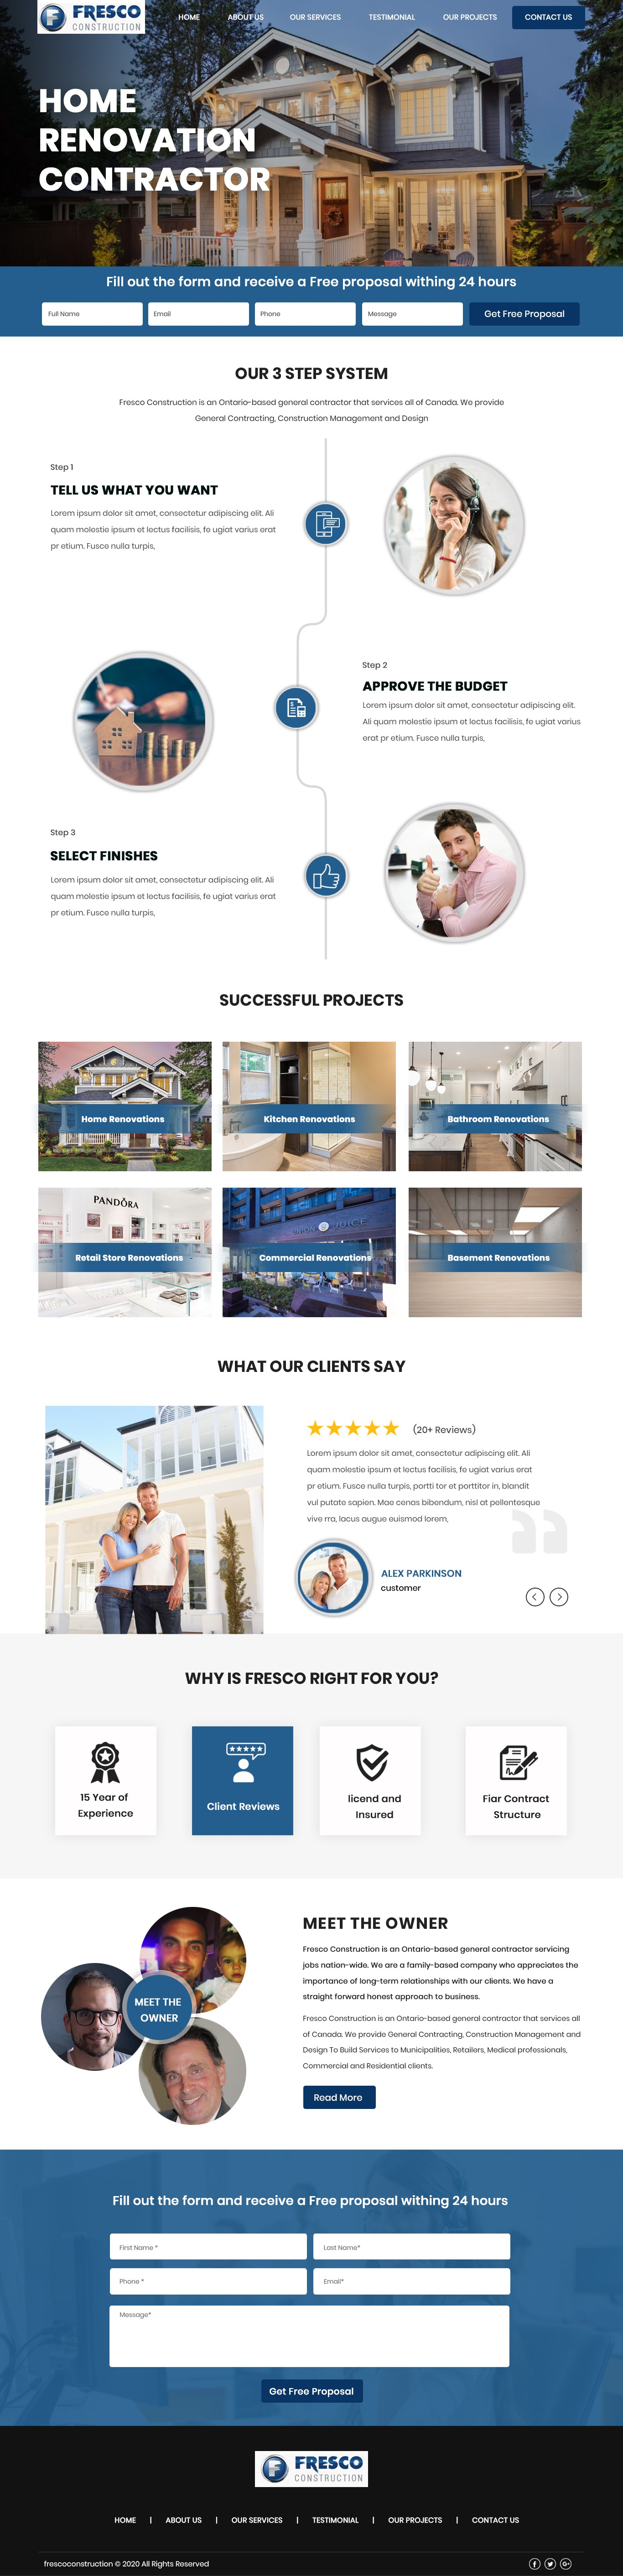 Landing Page for Home Renovation Contractor